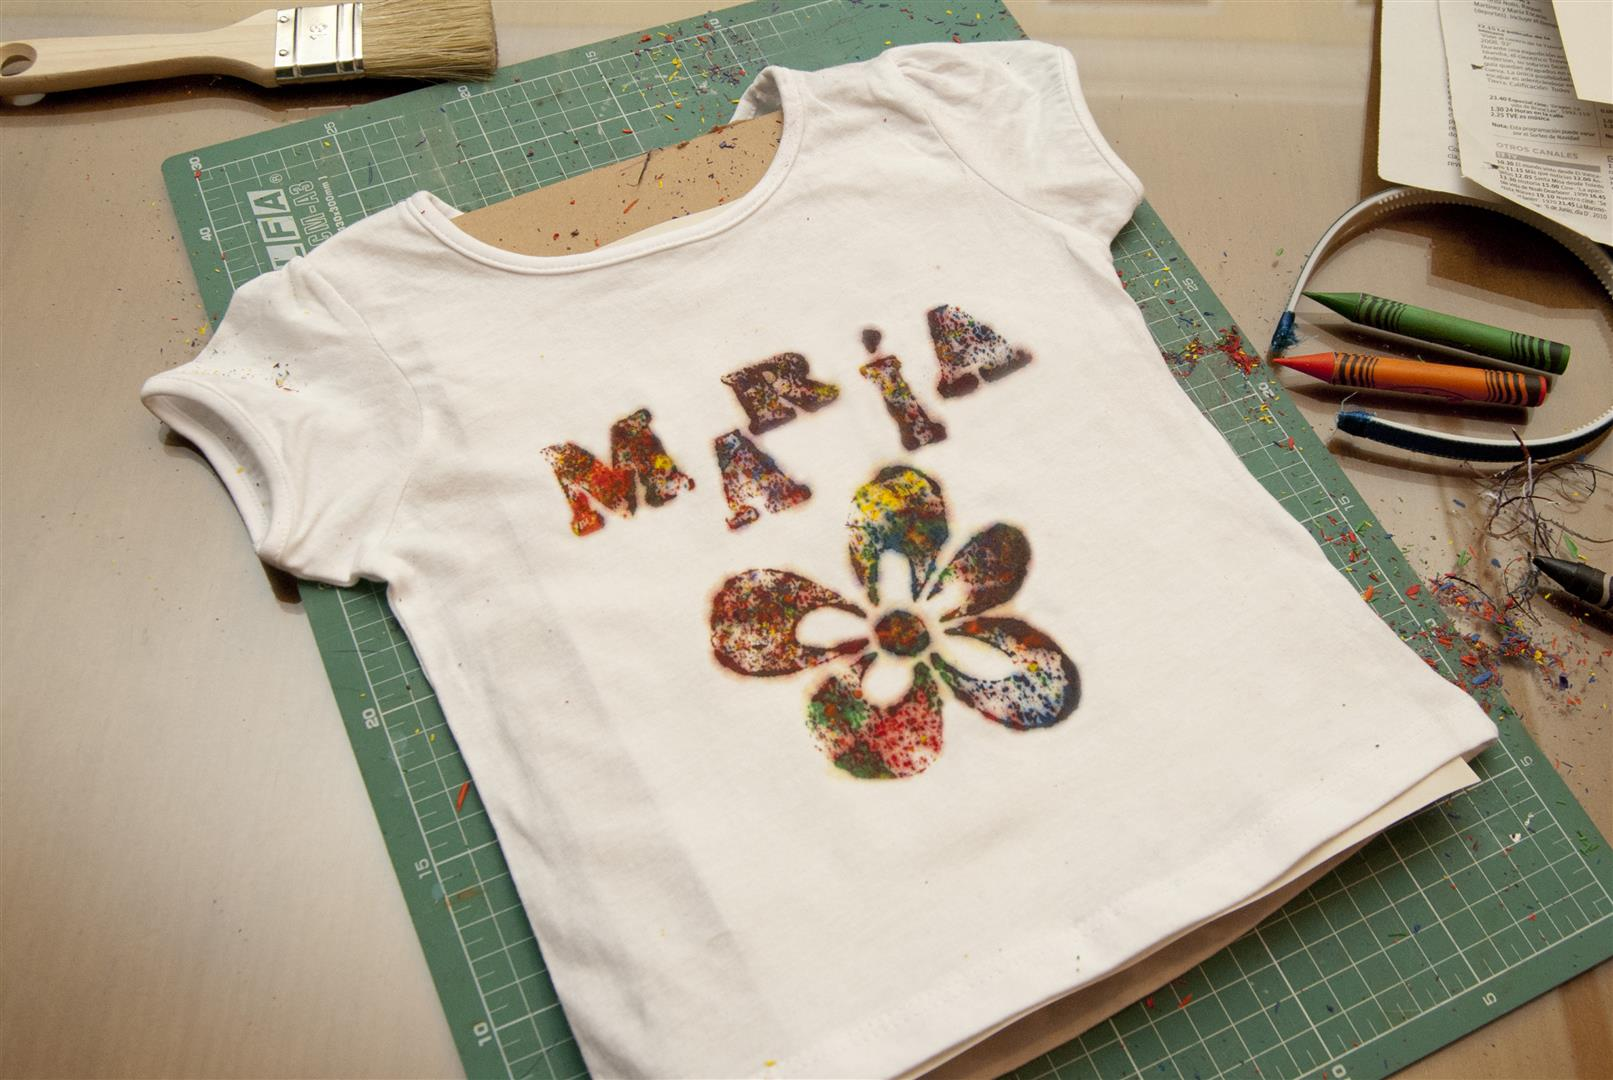 Pintar Una Camiseta Con Ceras De Colorescustom Colored Shirt With